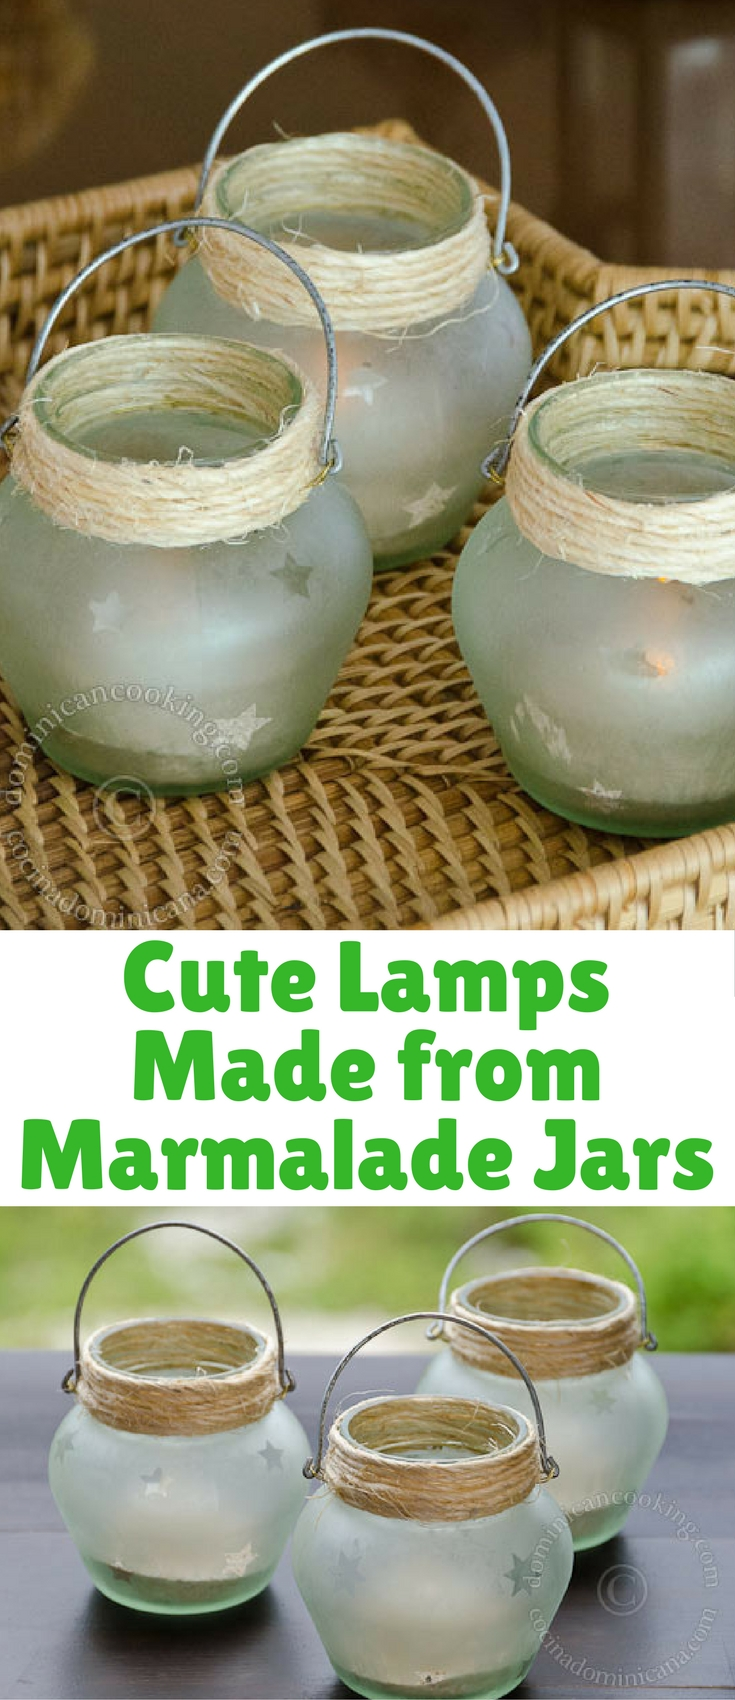 I made some more lanterns from marmalade jars to show you the how-to process. They turned out beautifully!